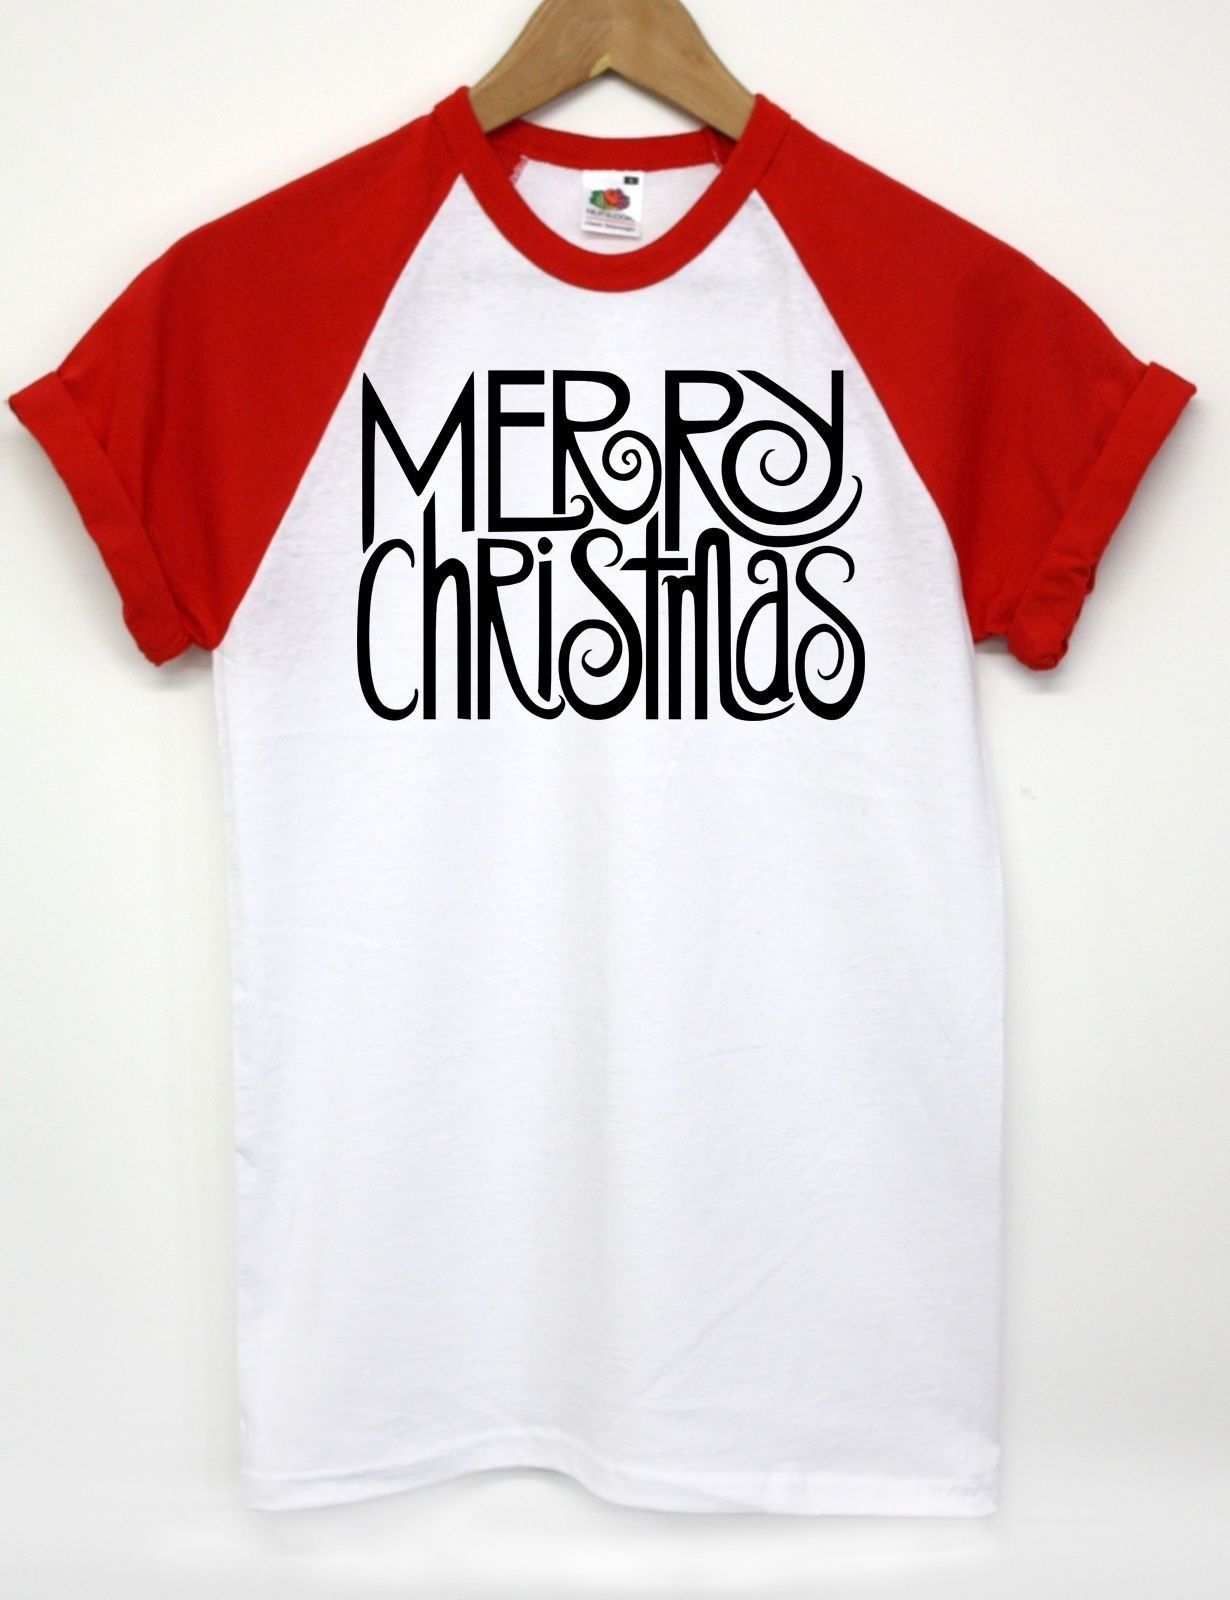 MERRY CHRISTMAS T SHIRT XMAS PARTY SECRET SANTA PRESENT GIFT IDEA ...